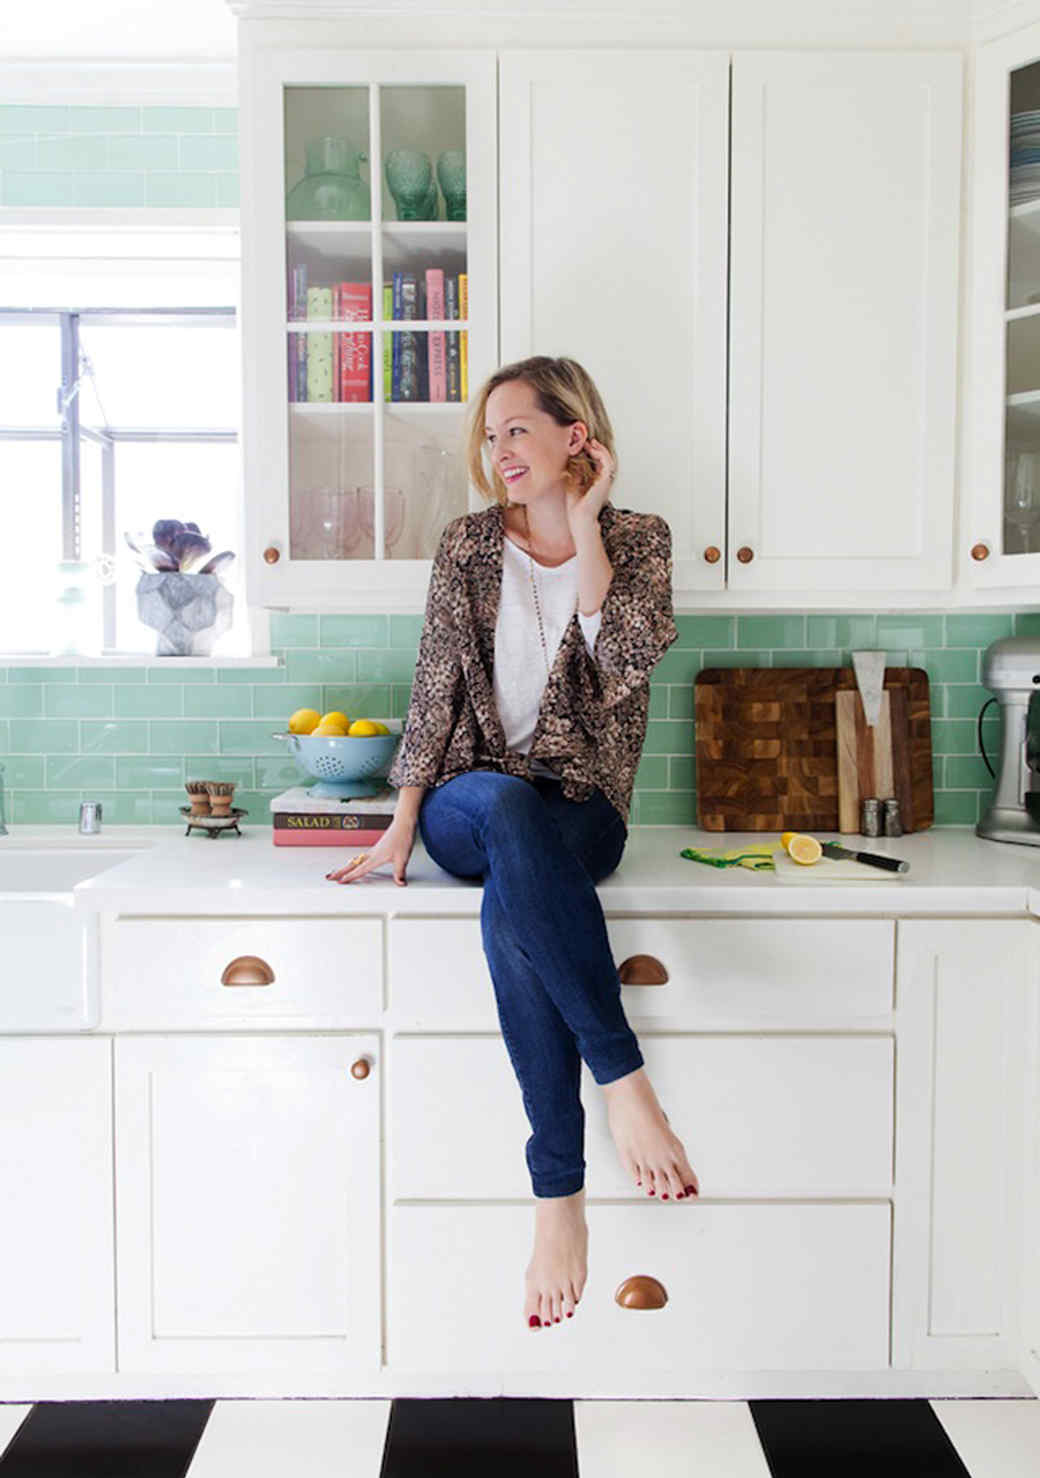 3 Simple Decorating Ideas that Can Instantly Transform Your Kitchen